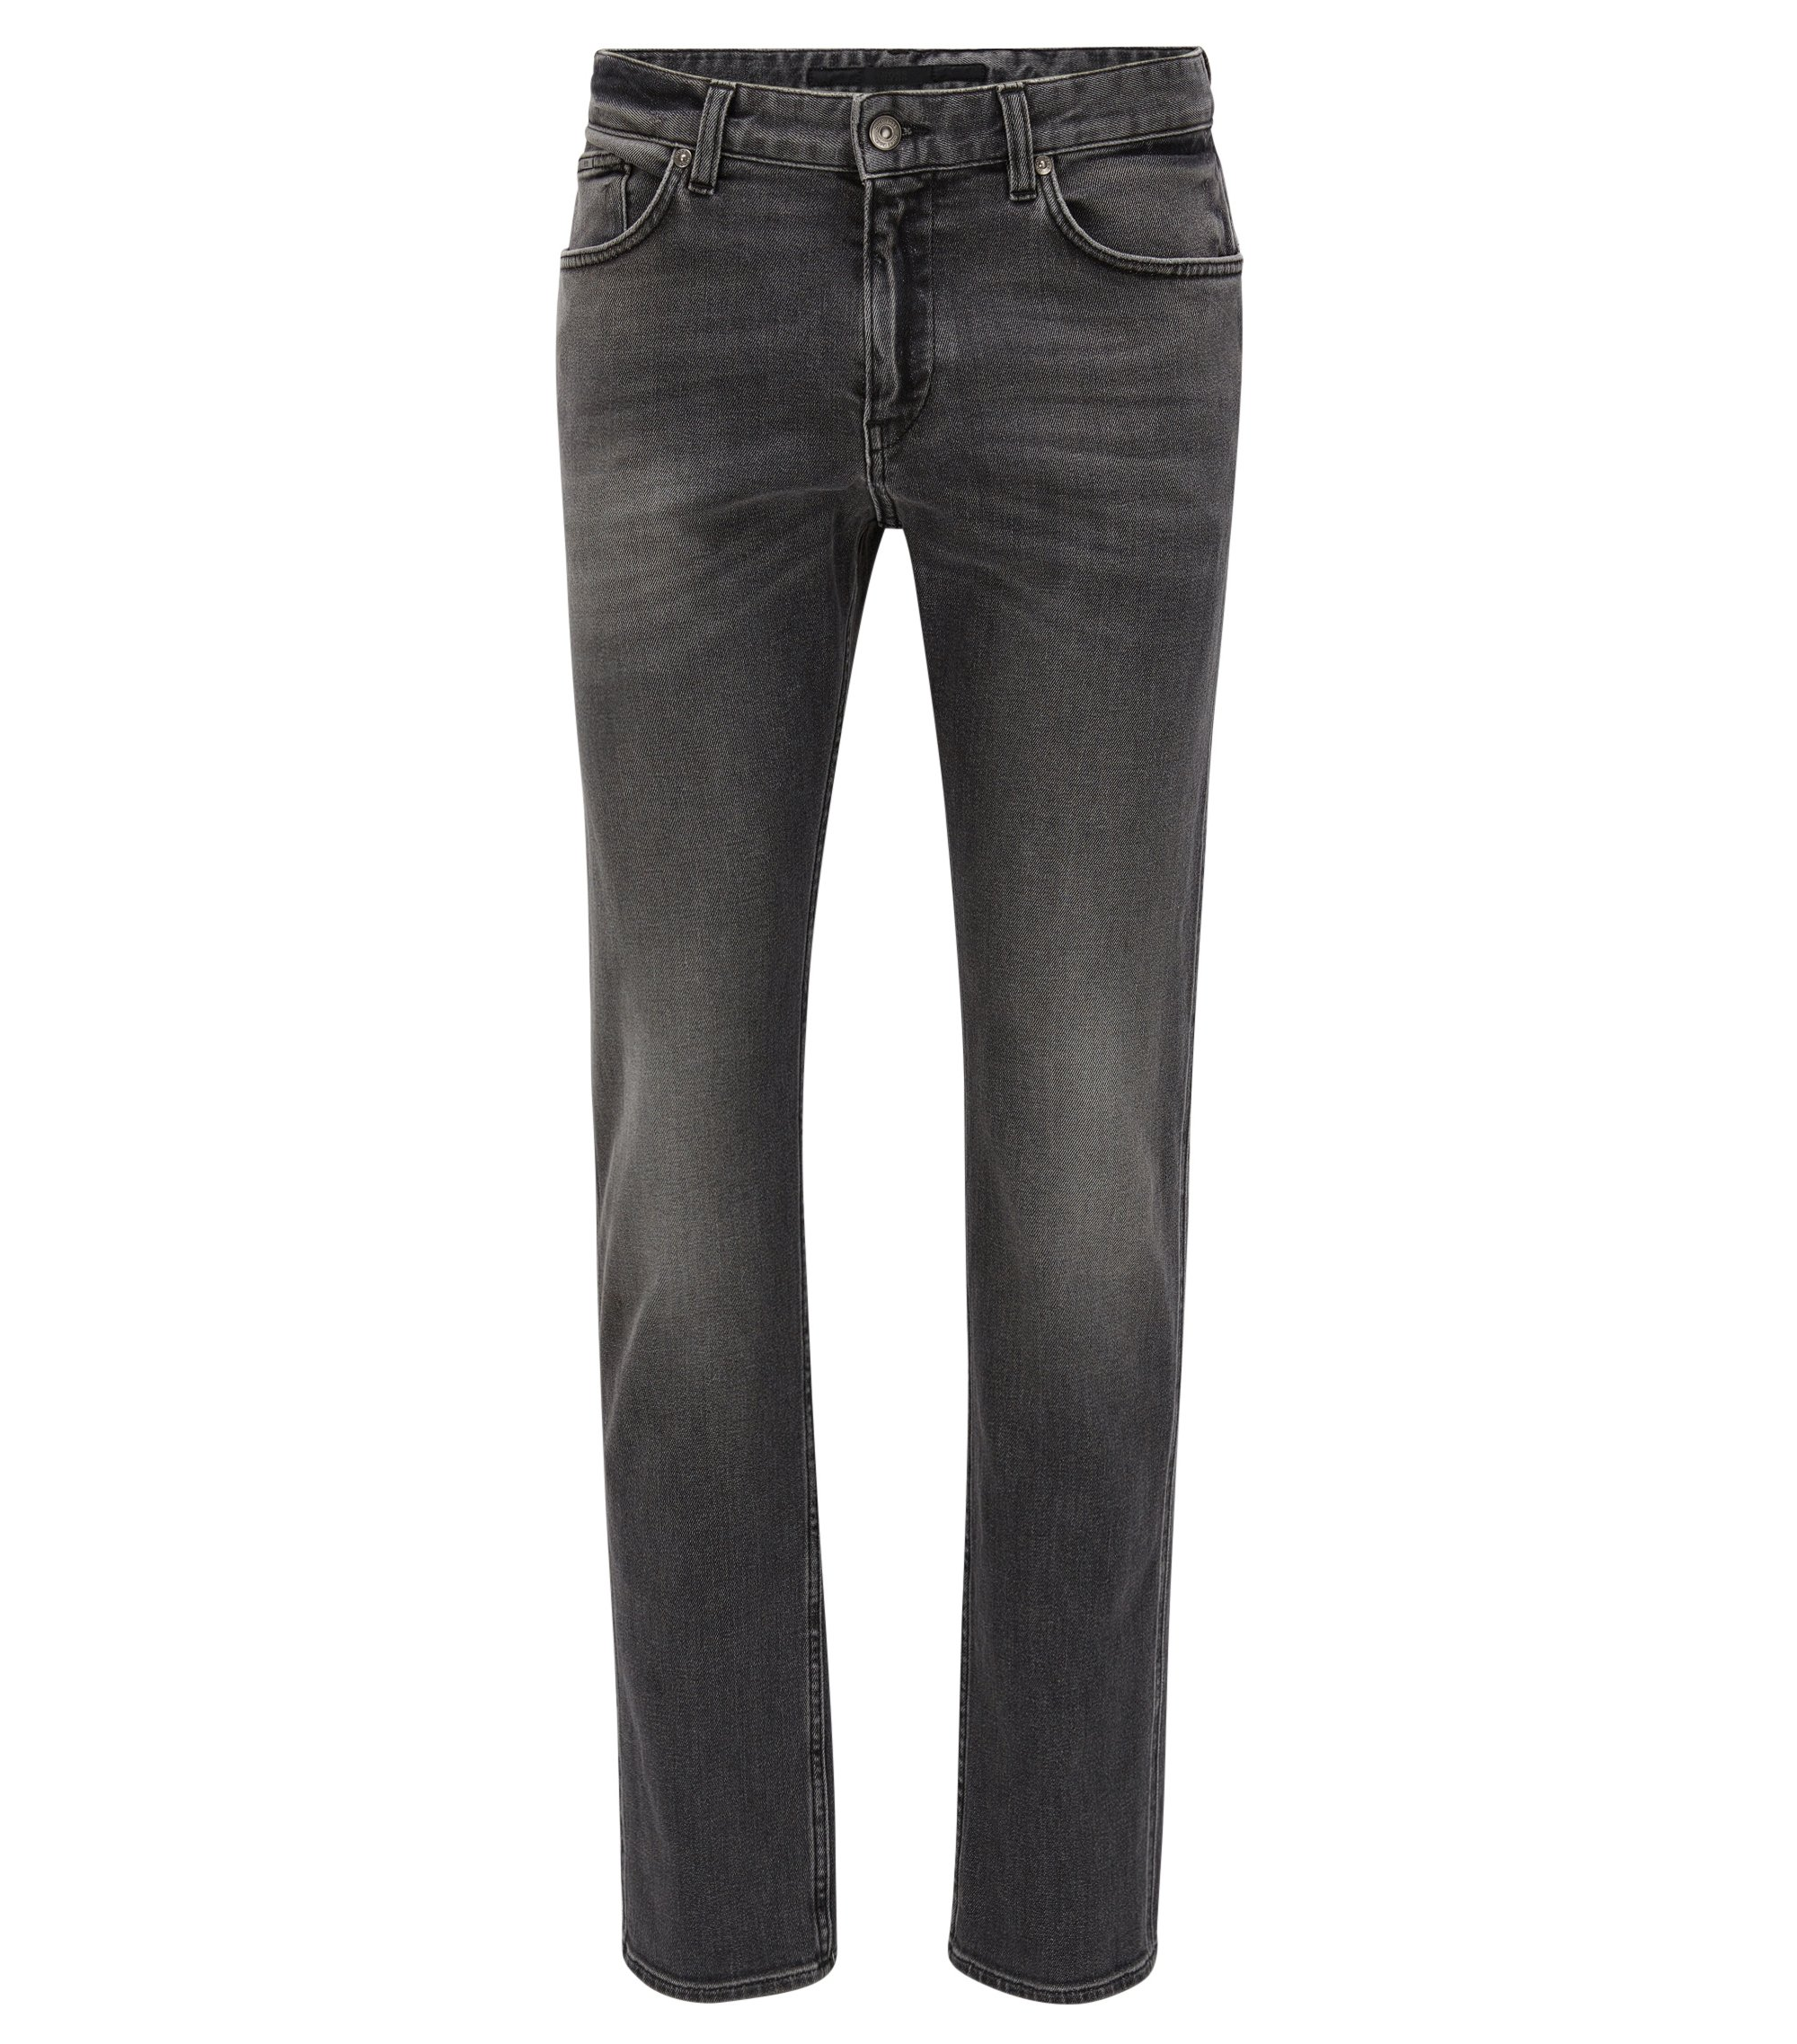 Jeans Slim Fit gris en denim stretch, au délavage moyen, Anthracite